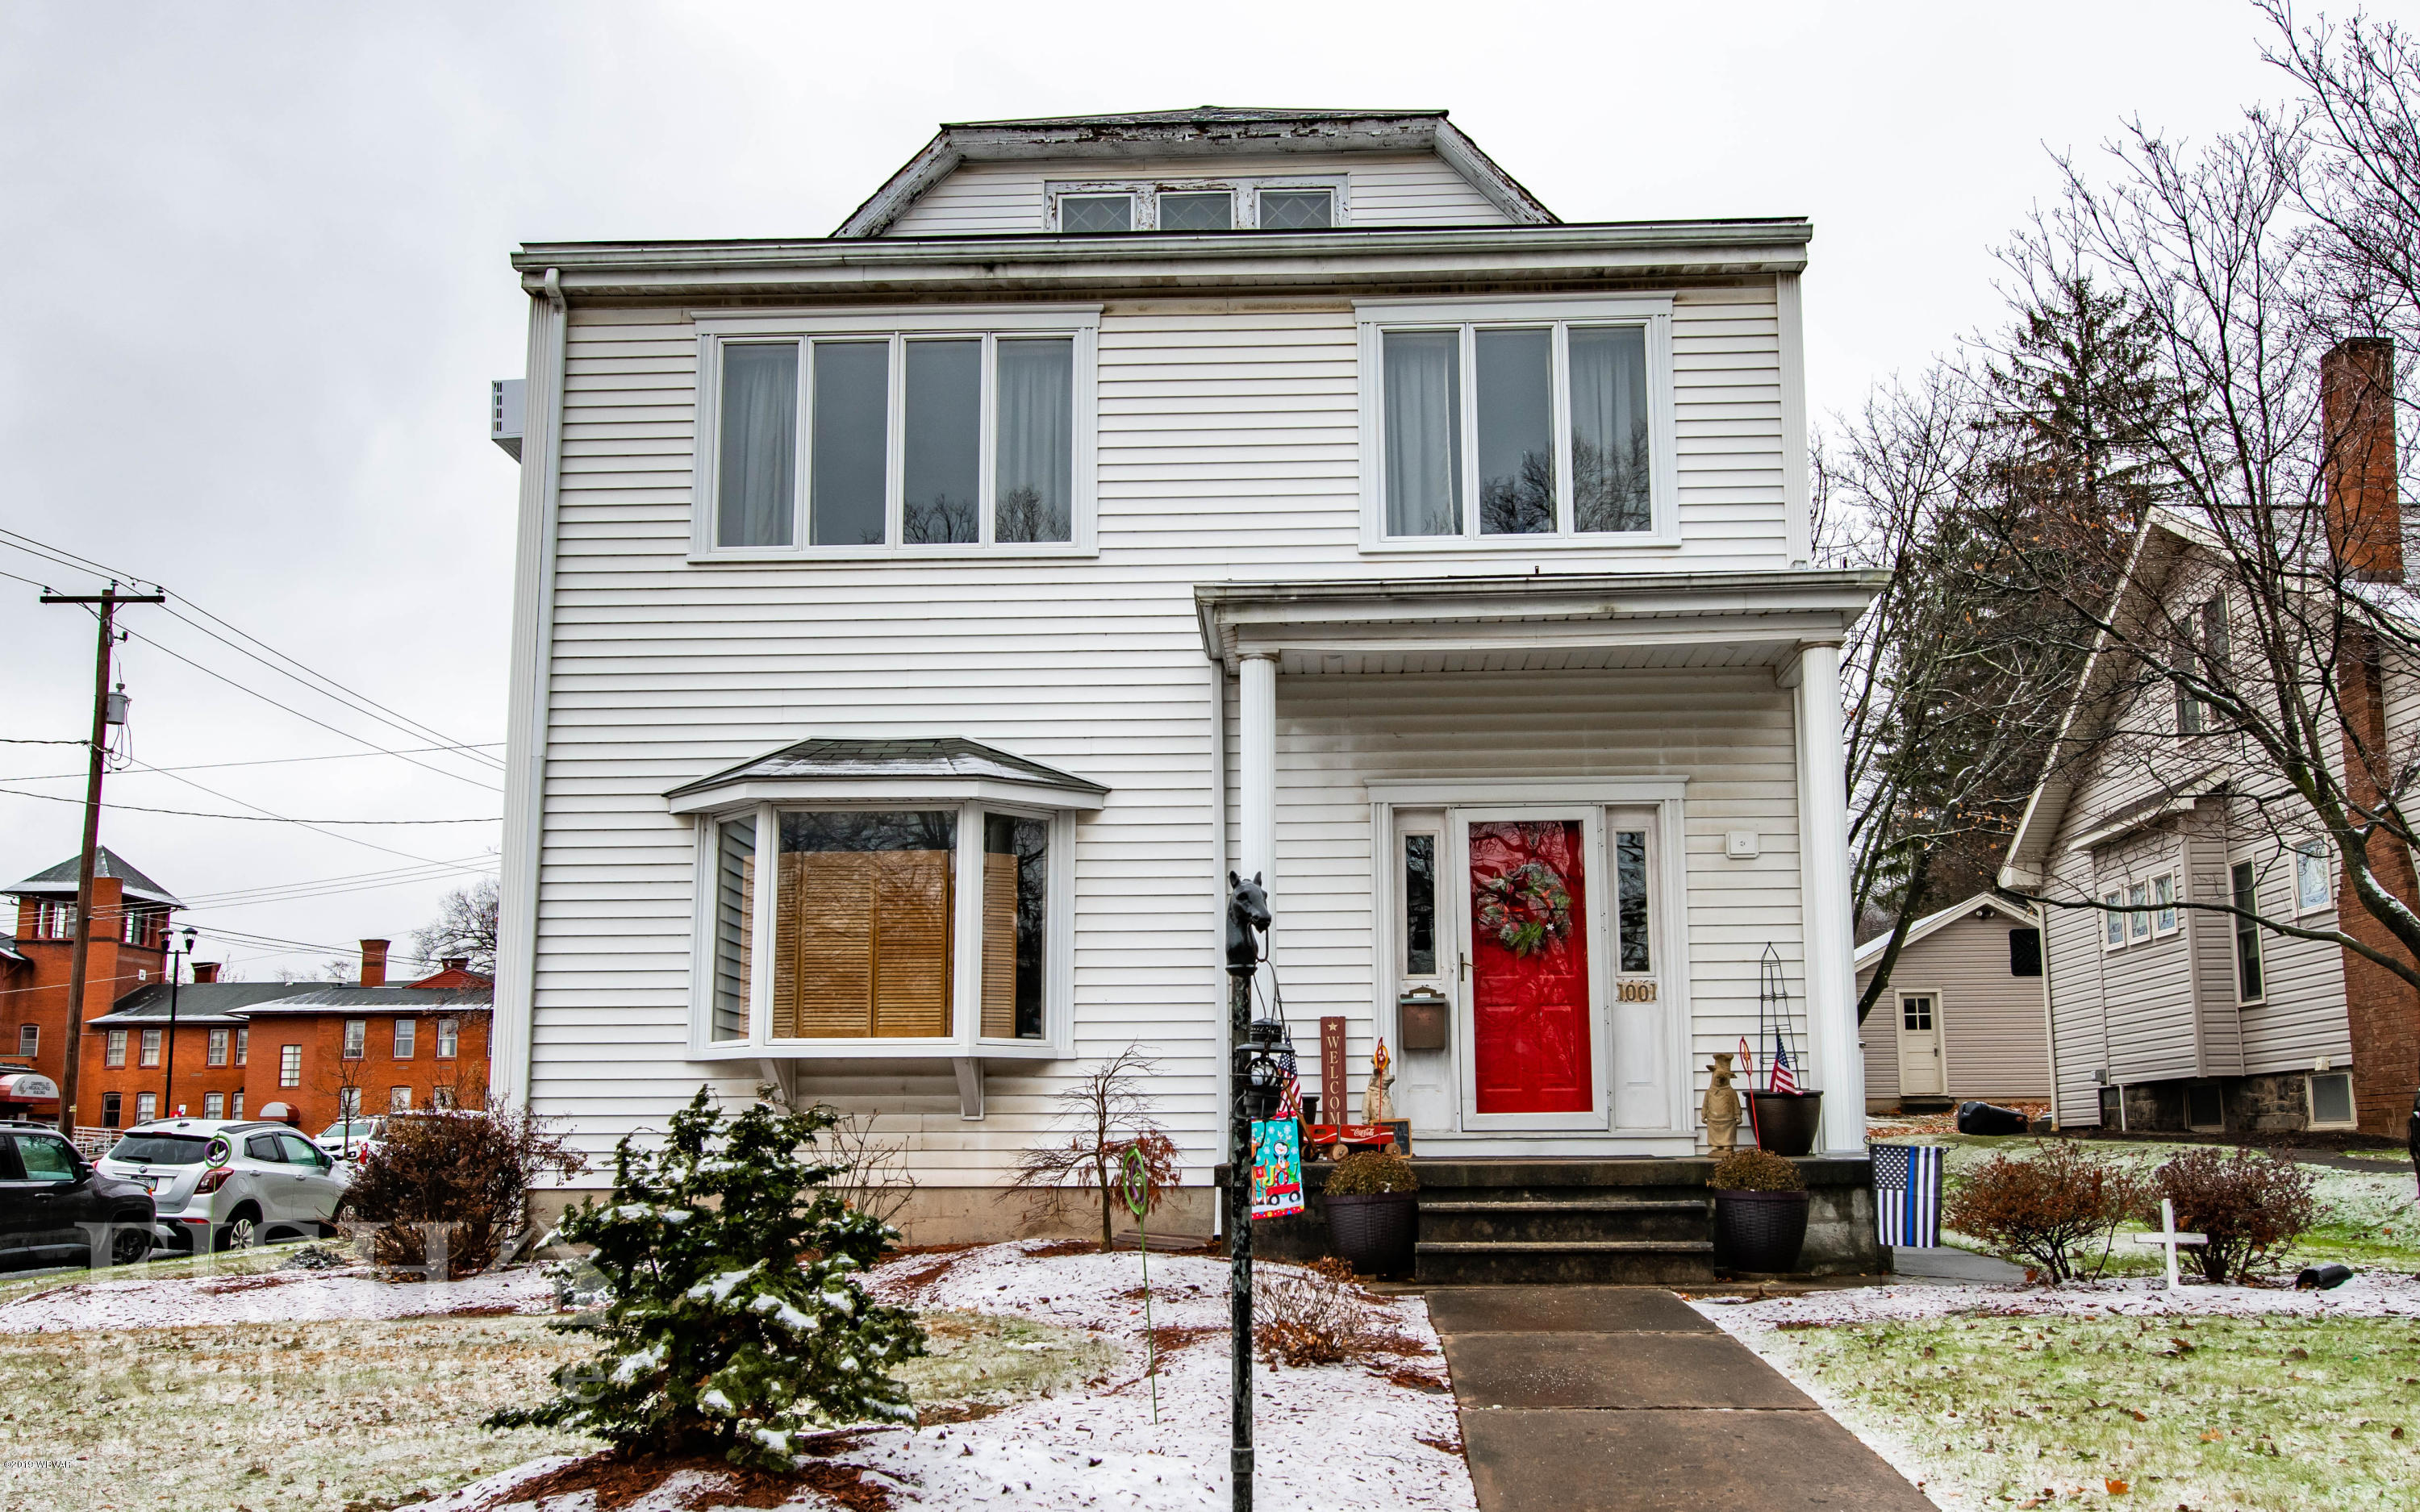 1001 WOODMONT AVENUE, Williamsport, PA 17701, 6 Bedrooms Bedrooms, ,2.5 BathroomsBathrooms,Residential,For sale,WOODMONT,WB-89294